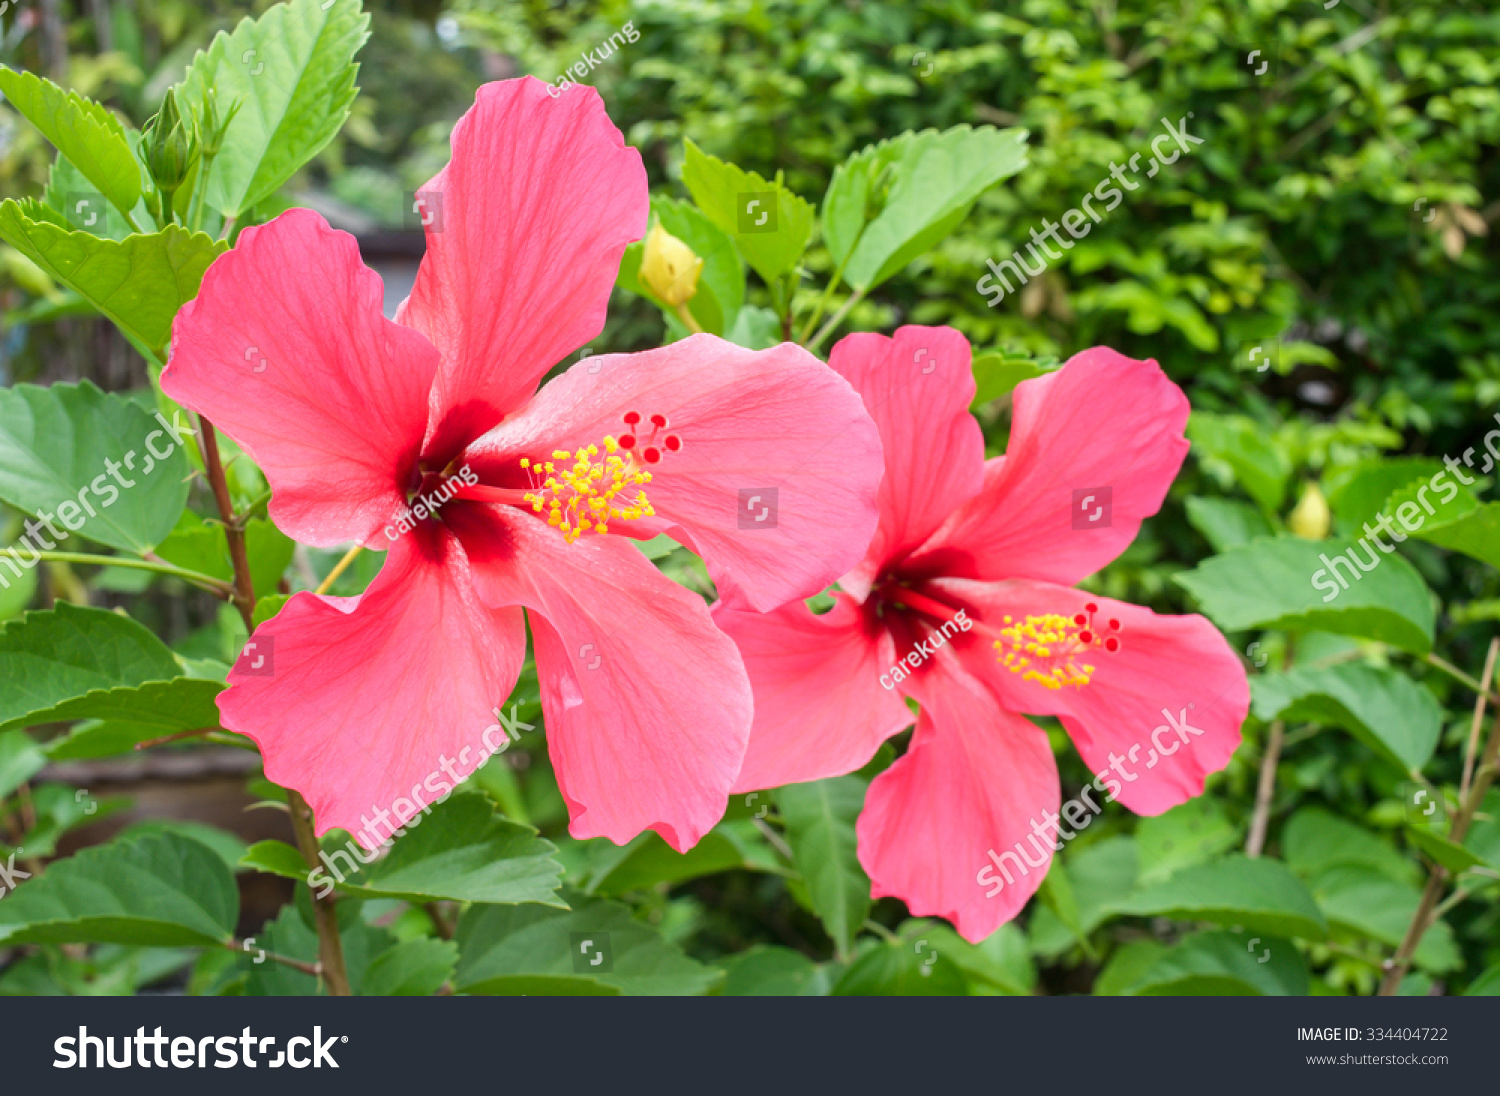 Red hibiscus flower scientific name hibiscus stock photo royalty red hibiscus flower scientific name is hibiscus syriacus l izmirmasajfo Image collections